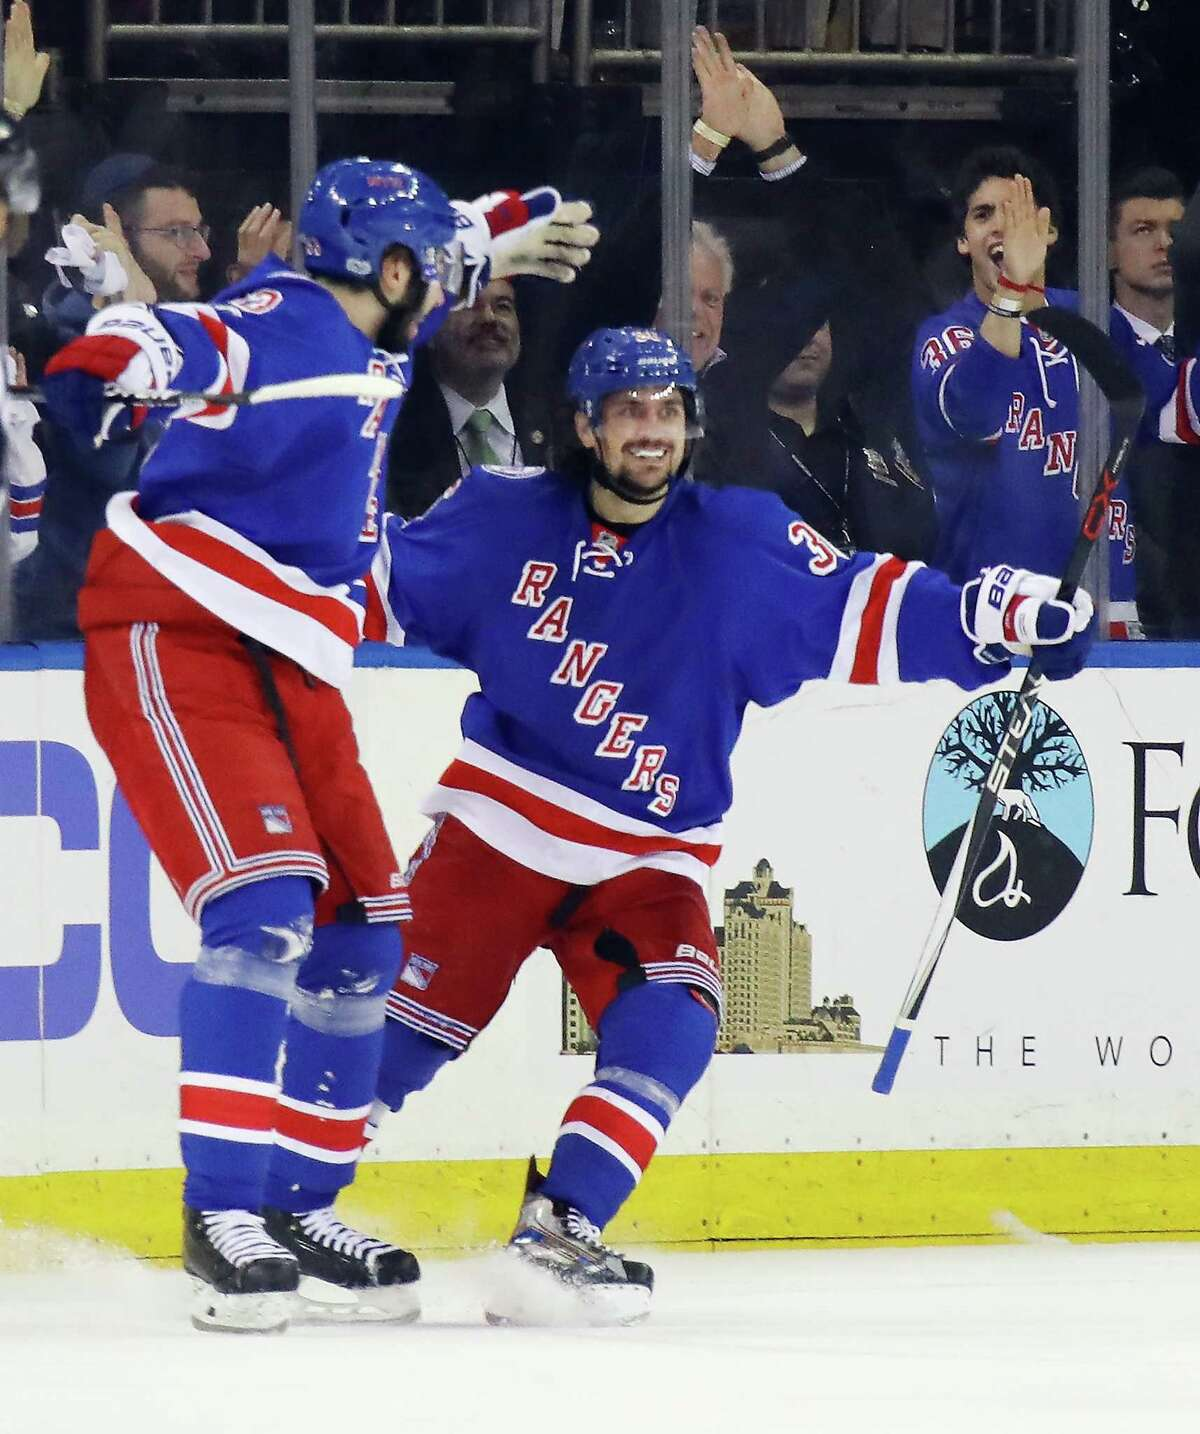 NEW YORK, NY - MAY 02: Mats Zuccarello #36 of the New York Rangers celebrates his first period goal against the Ottawa Senators in Game Three of the Eastern Conference Second Round during the 2017 NHL Stanley Cup Playoffs at Madison Square Garden on May 2, 2017 in New York City. The Rangers defeated the Senators 4-1. (Photo by Bruce Bennett/Getty Images) ORG XMIT: 700039434